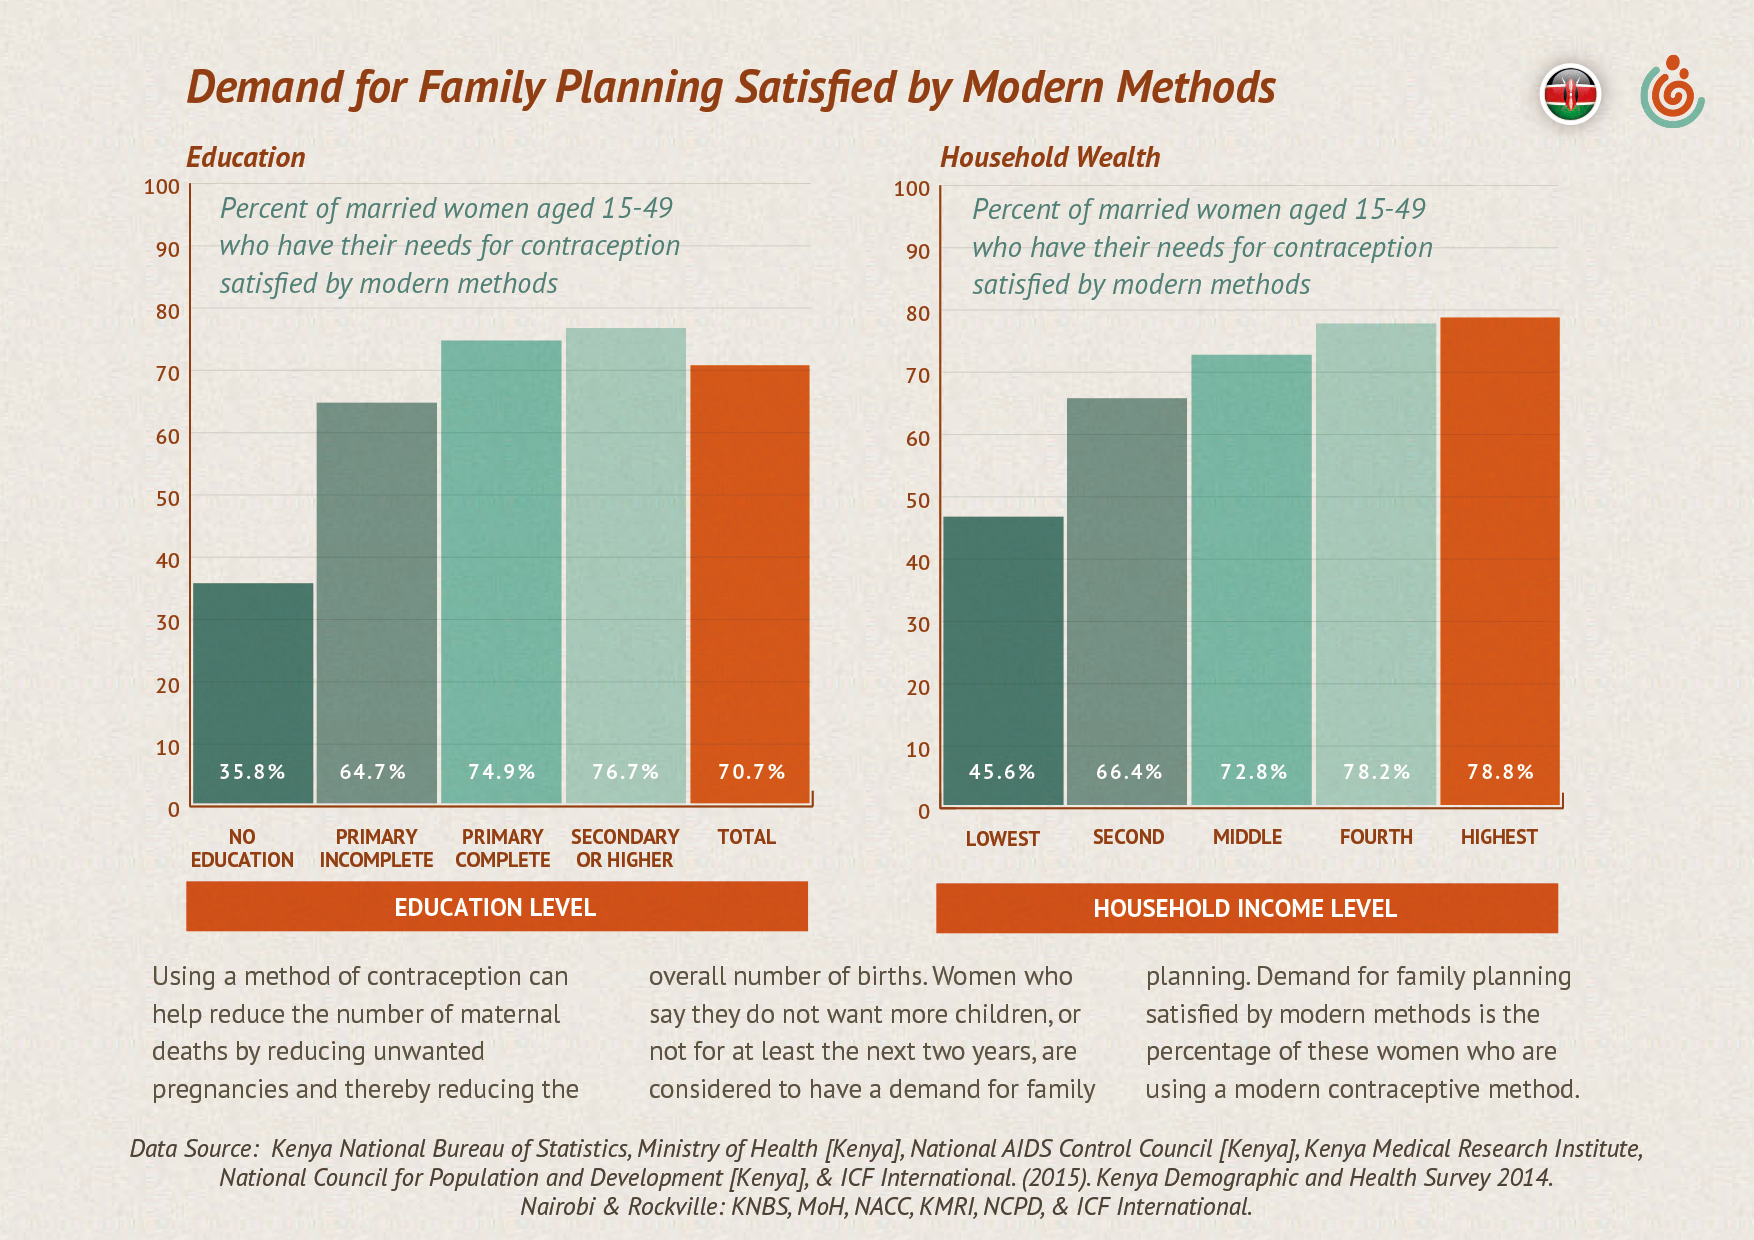 Demand for family planning in Kenya